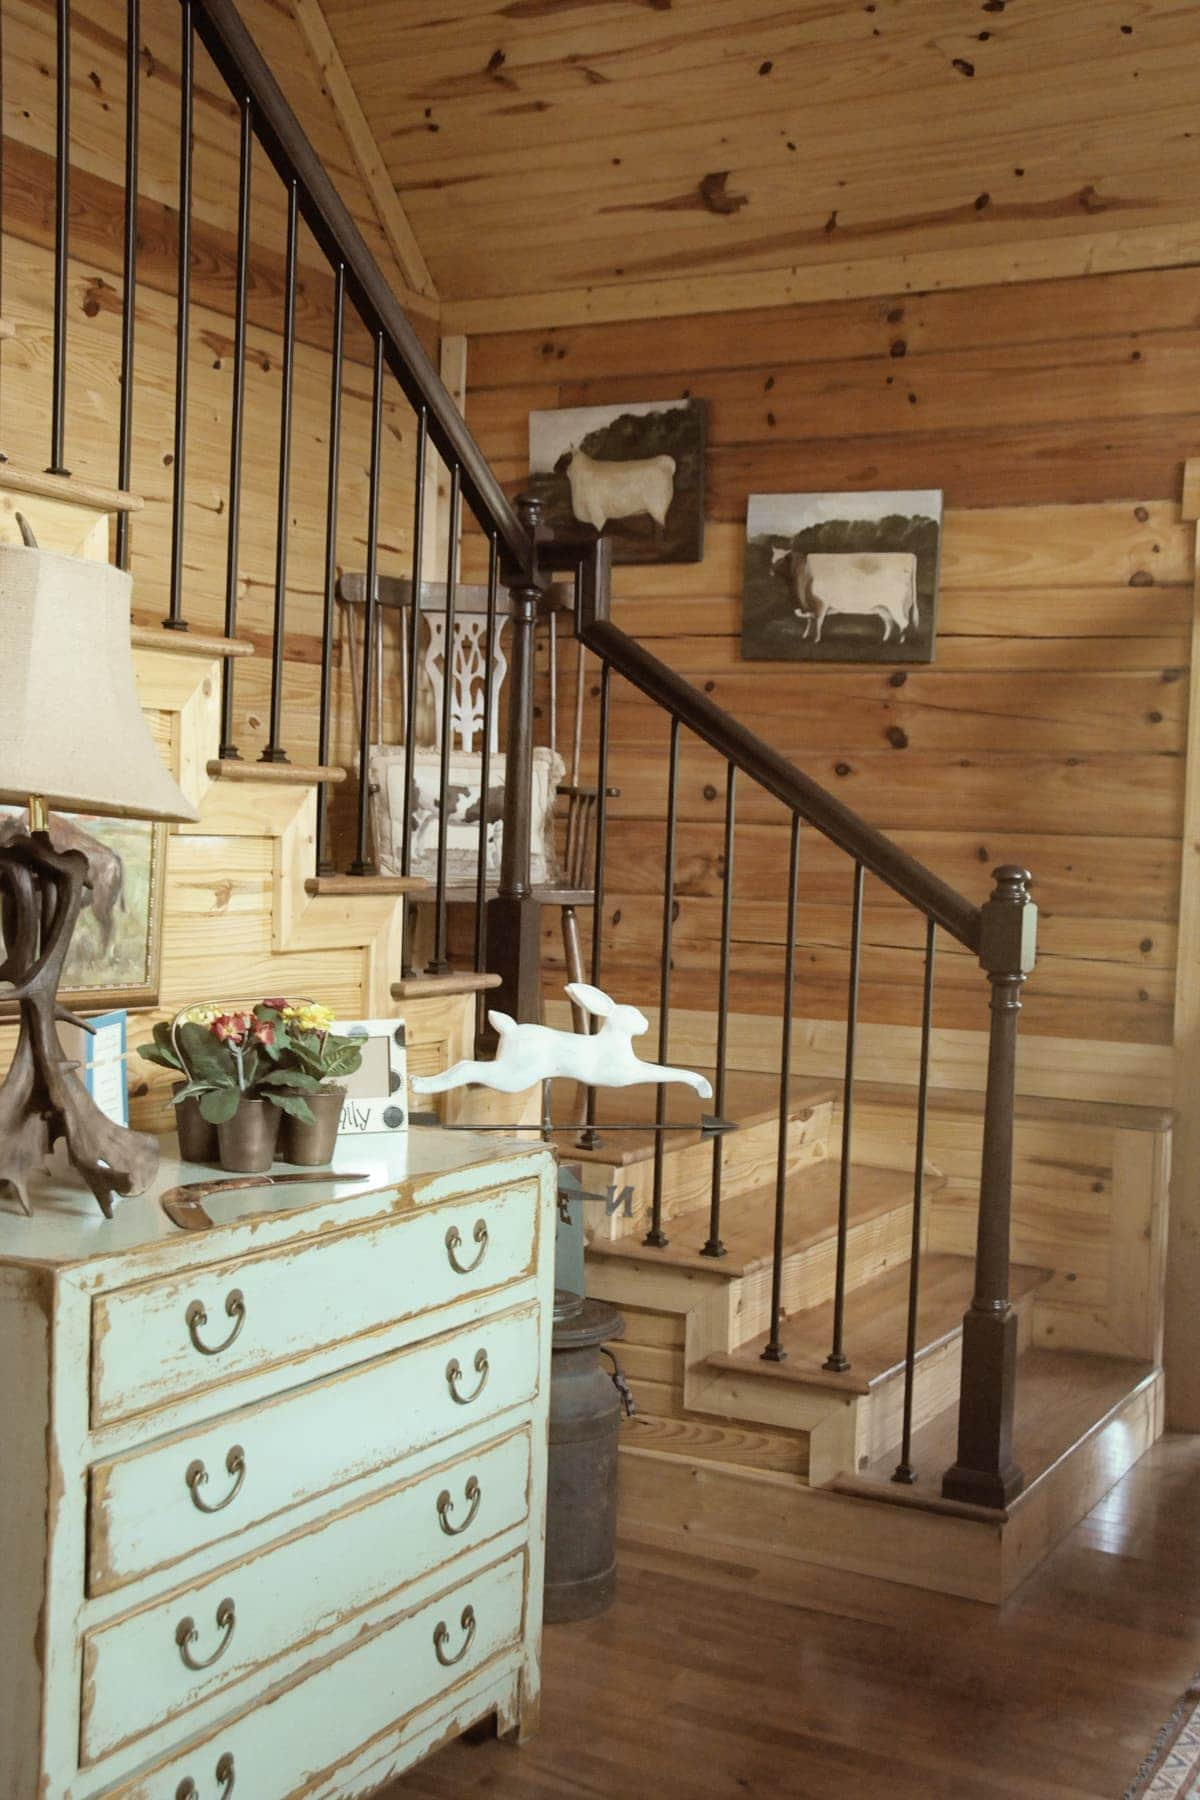 Decorating Knotty Pine Living Room: Some Country Inspiration, Cabin Decorating